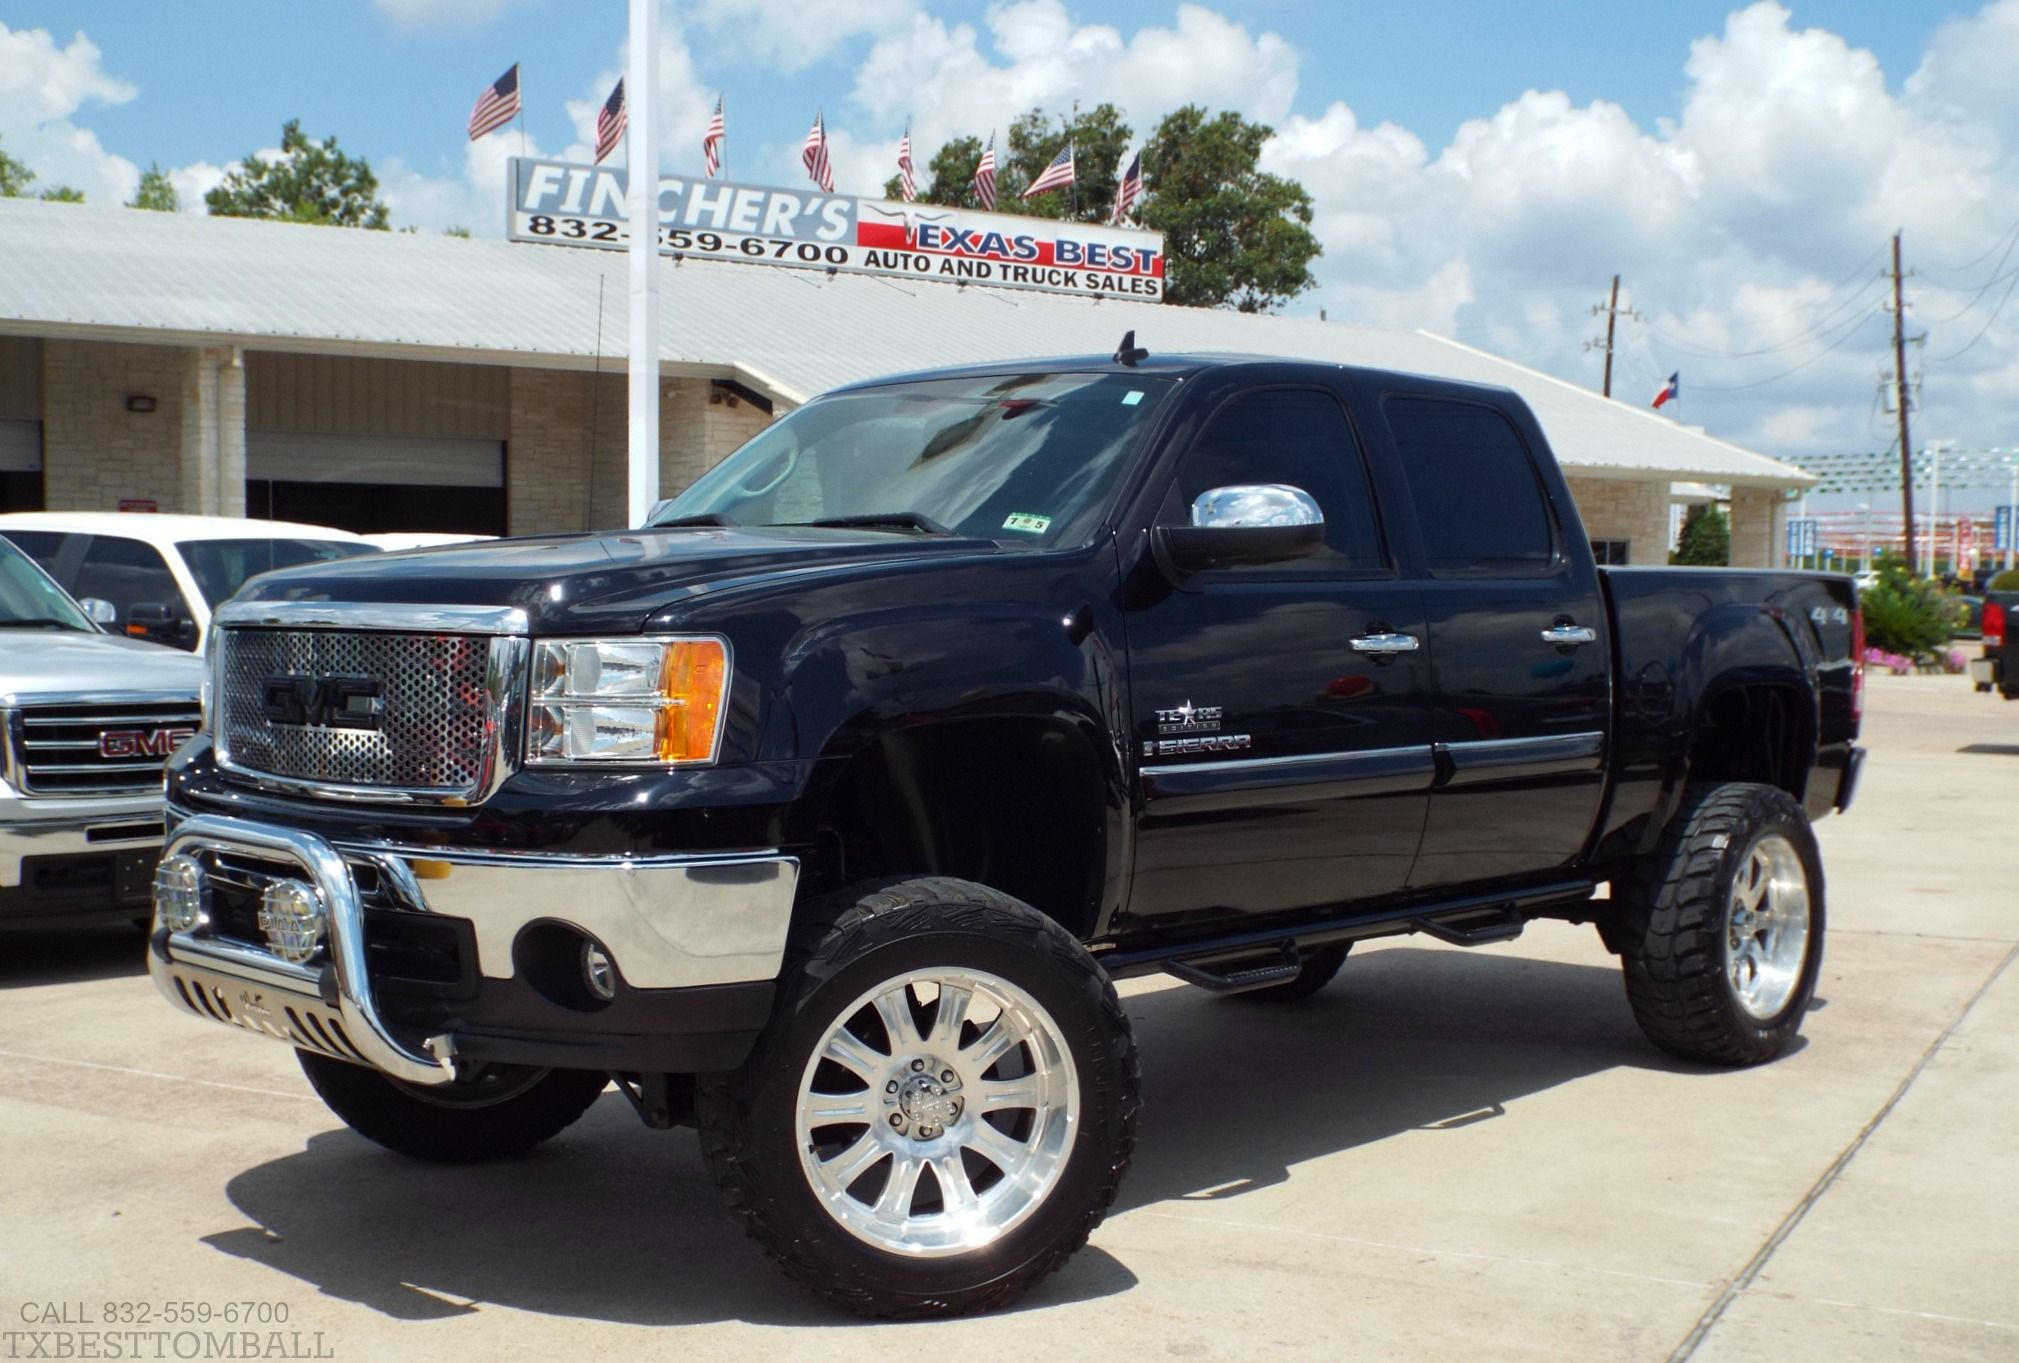 2009 Gmc Sierra 1500 Crew Cab Sle 4x4 Truck For Sale Only At Fincher S Texas Best Tomball Houston Htown G Gmc Sierra 1500 Gmc Sierra 4x4 Trucks For Sale